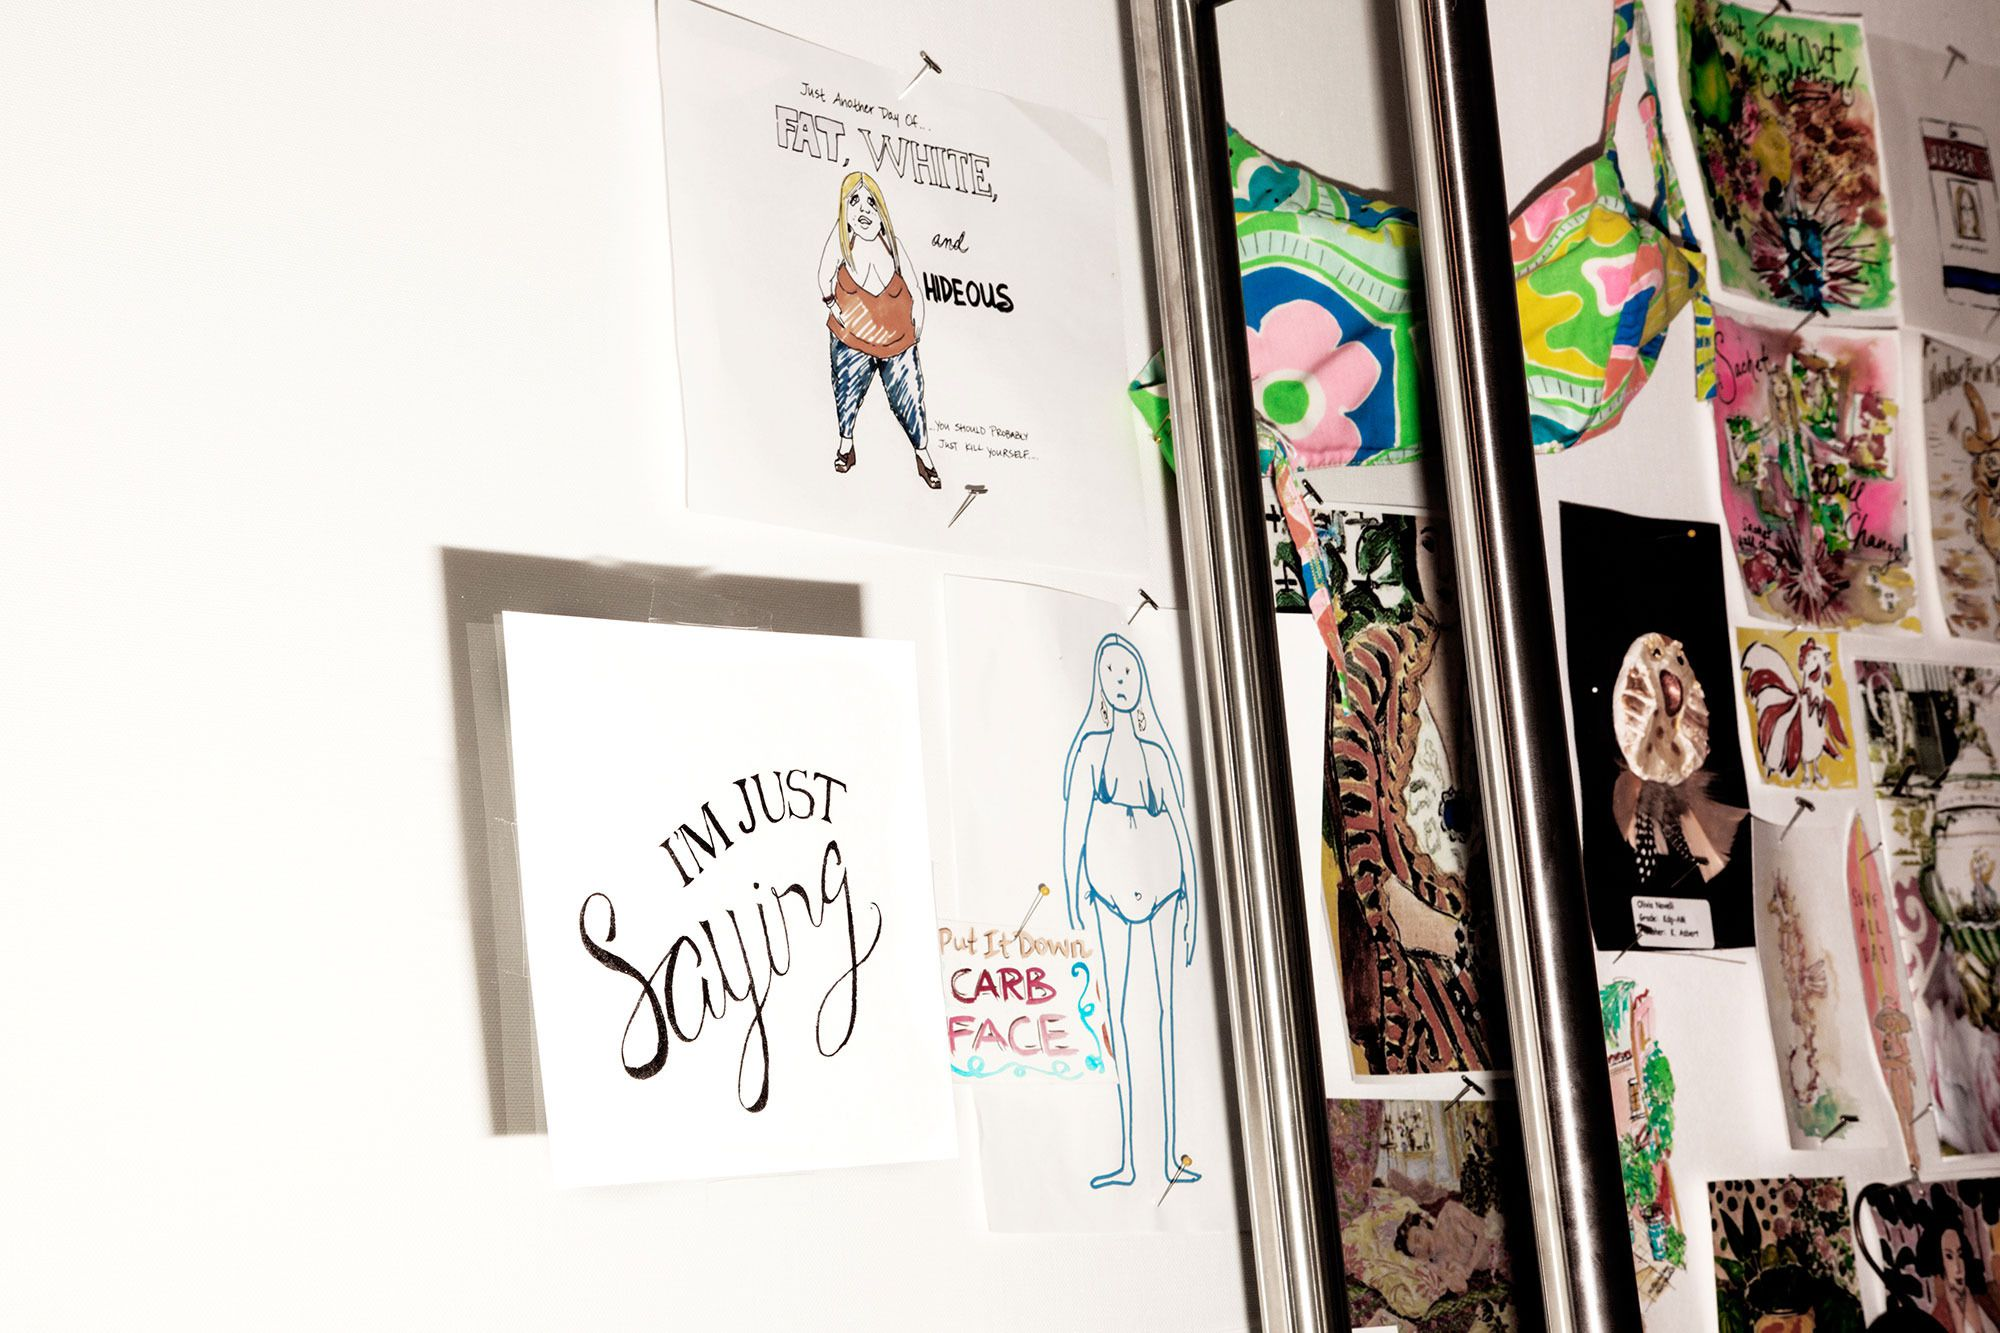 lilly pulitzer 39 s office decor includes fat shaming cartoons racked